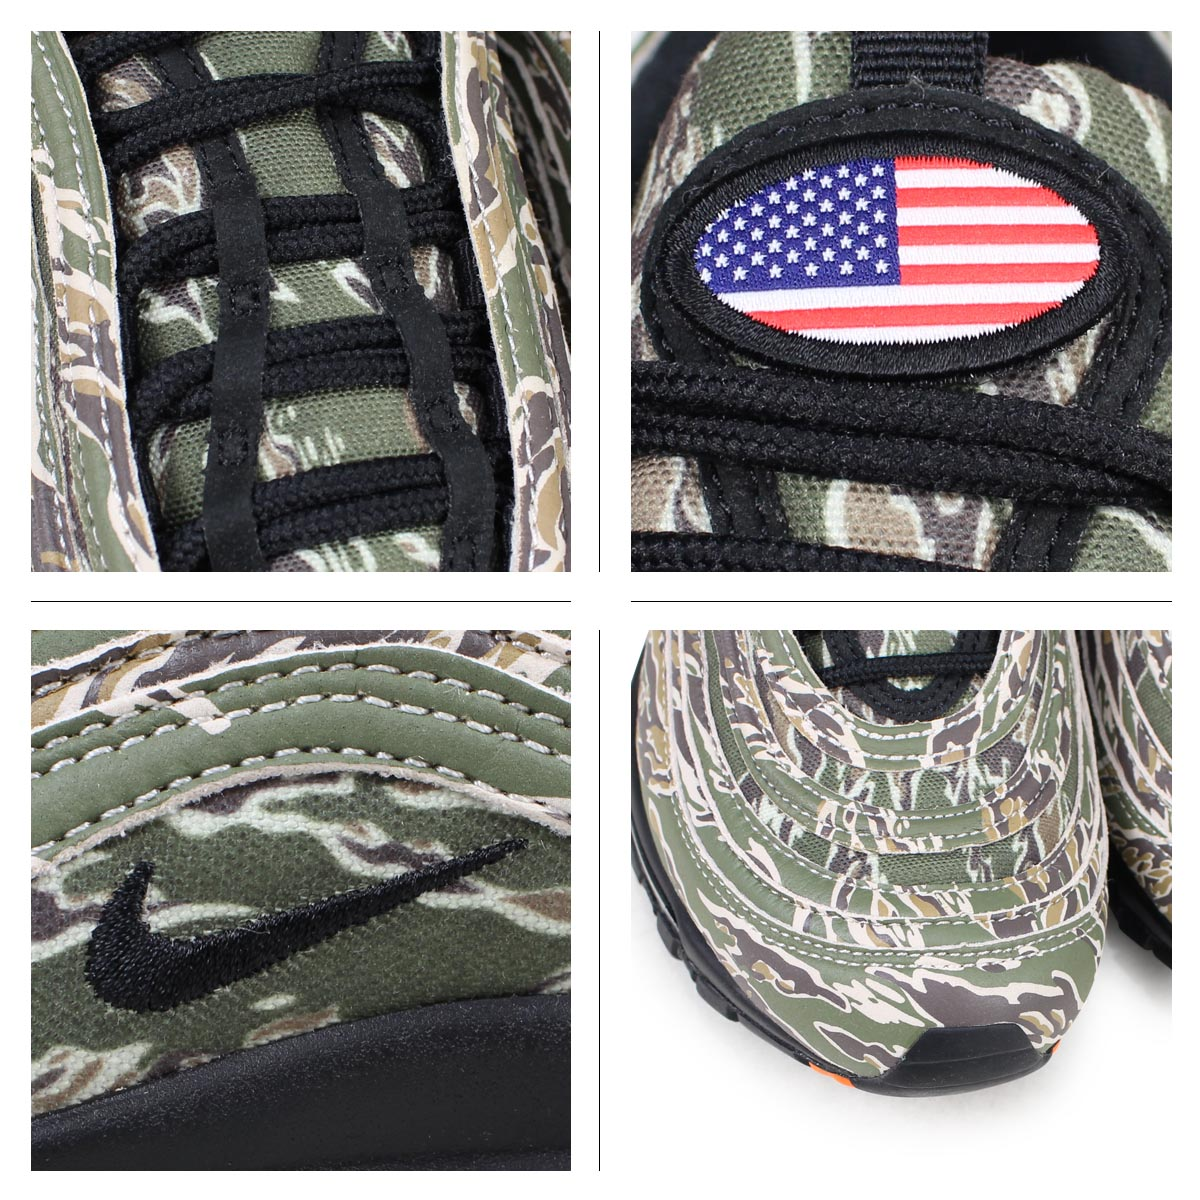 new product 89f74 8c875 NIKE AIR MAX 97 QS COUNTRY CAMO PACK Kie Ney AMAX 97 sneakers men AJ2614-205  duck  load planned Shinnyu load in reservation product 3 22 containing   183